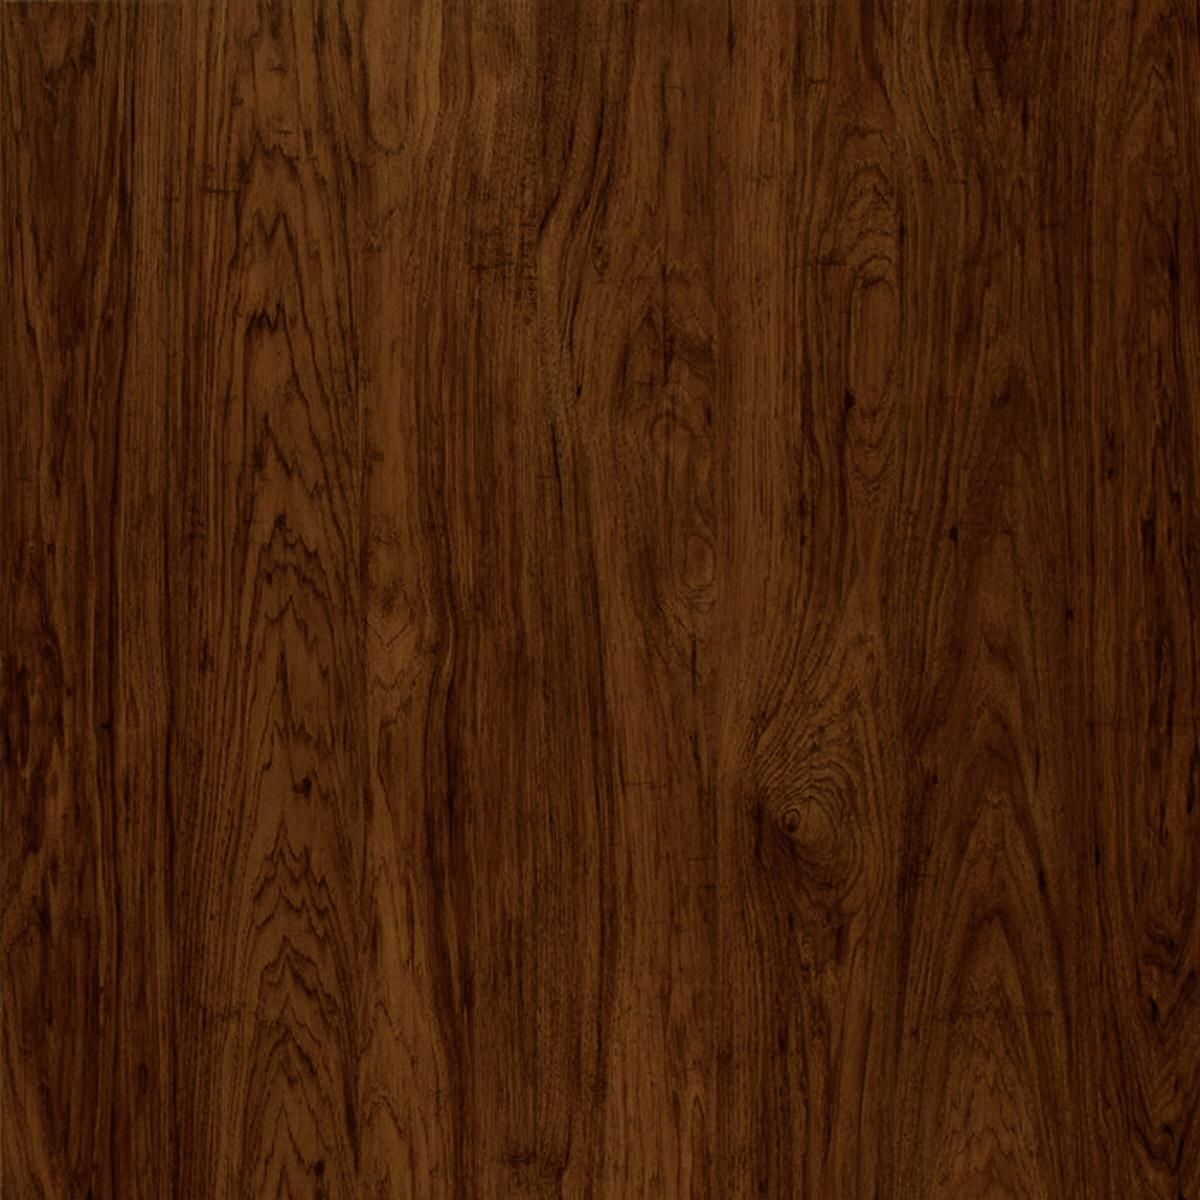 Mohawk Express Loc Toasted Hickory 10mm Laminate Flooring With Attached Pad Laminate Flooring Oak Engineered Hardwood Engineered Hardwood Hardwood